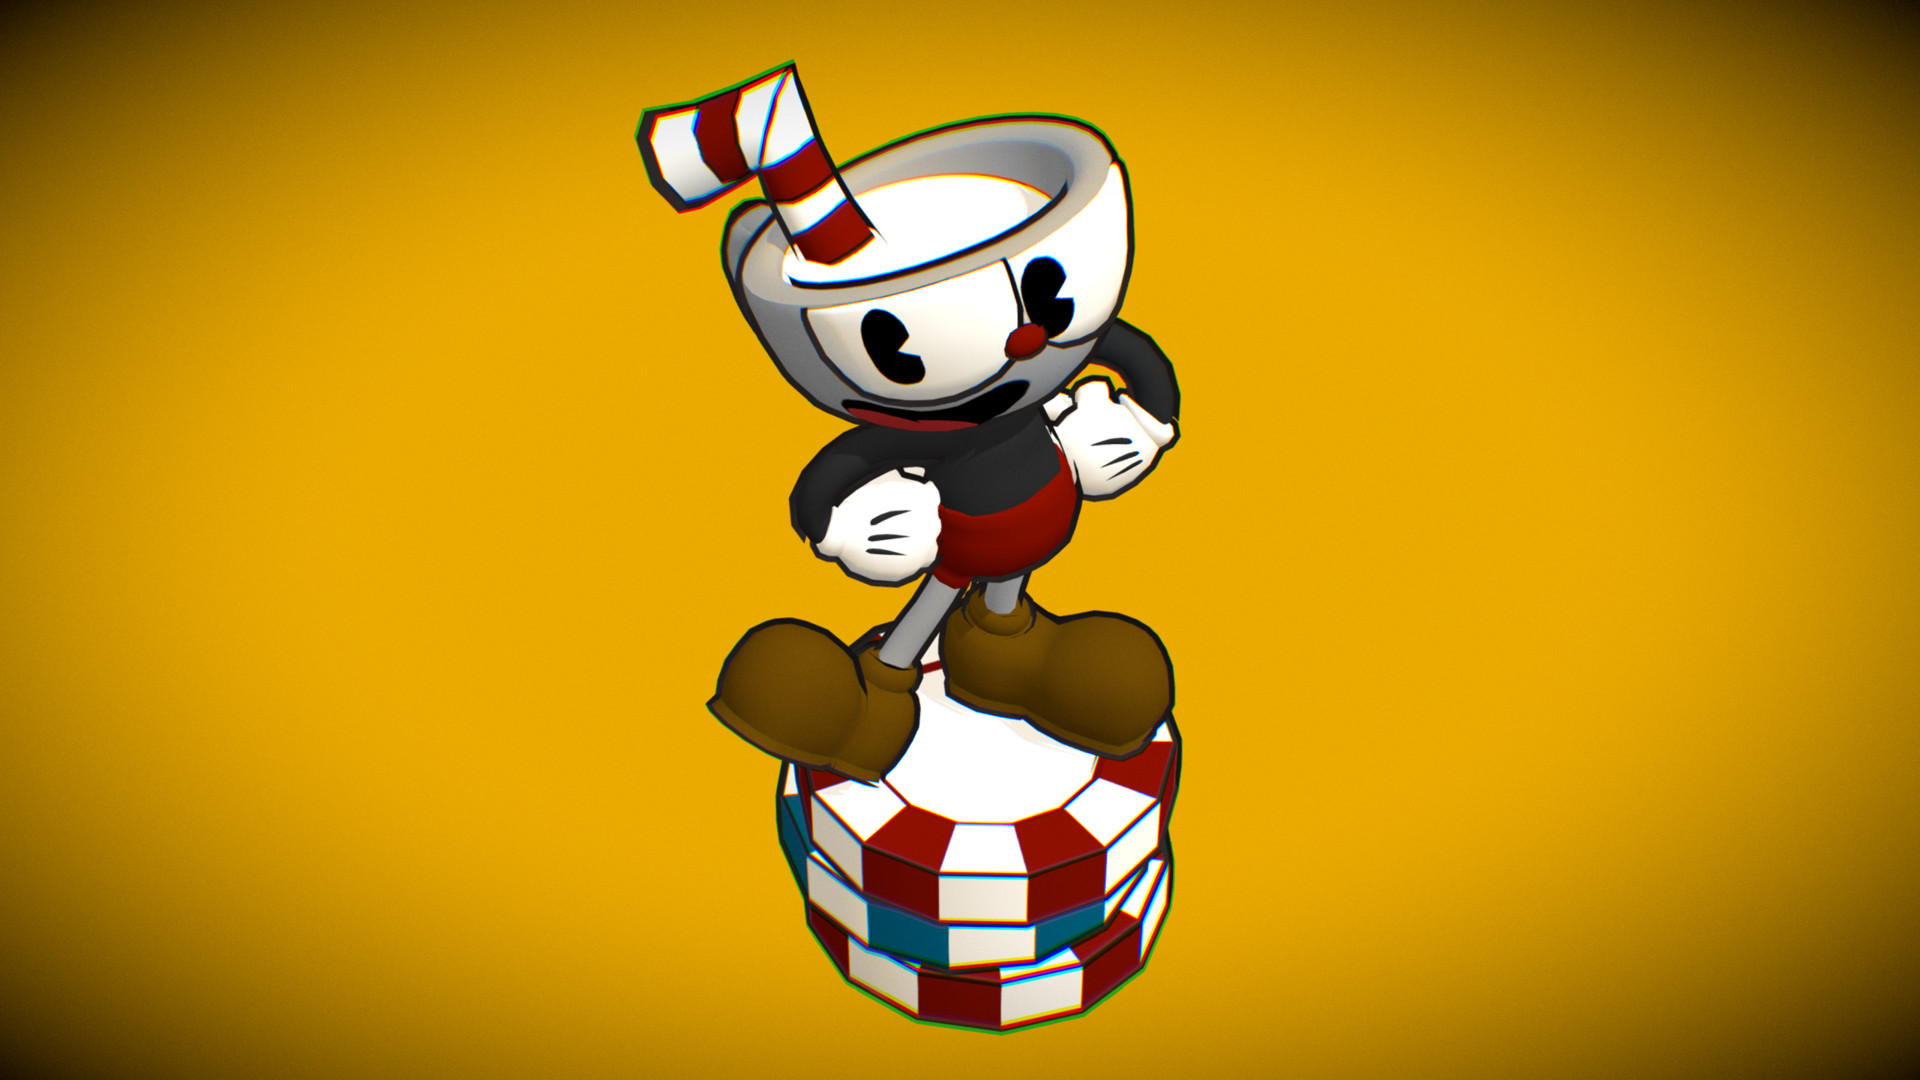 Cuphead Wallpapers - Top Free Cuphead Backgrounds ...